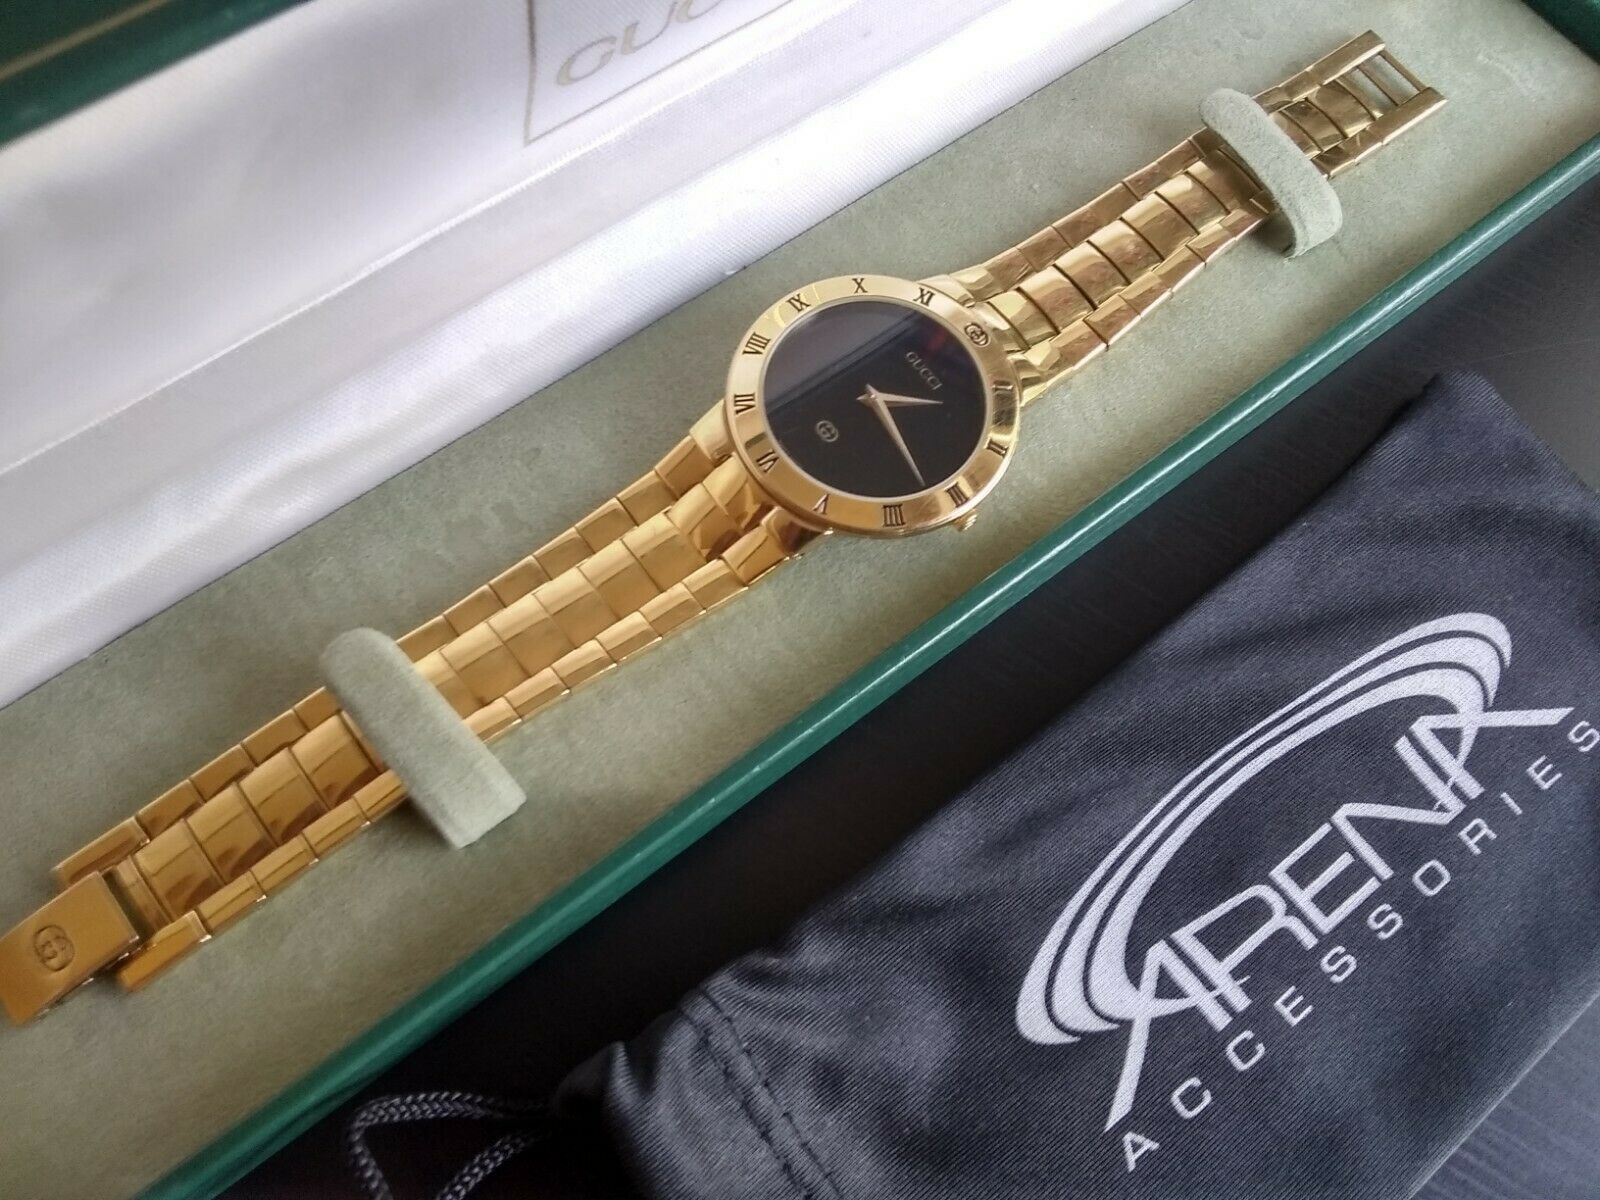 GUCCI 3300M Black Face Roman Numerals 18k Yellow Gold Plated Men's Swiss Movement Watch Original Box